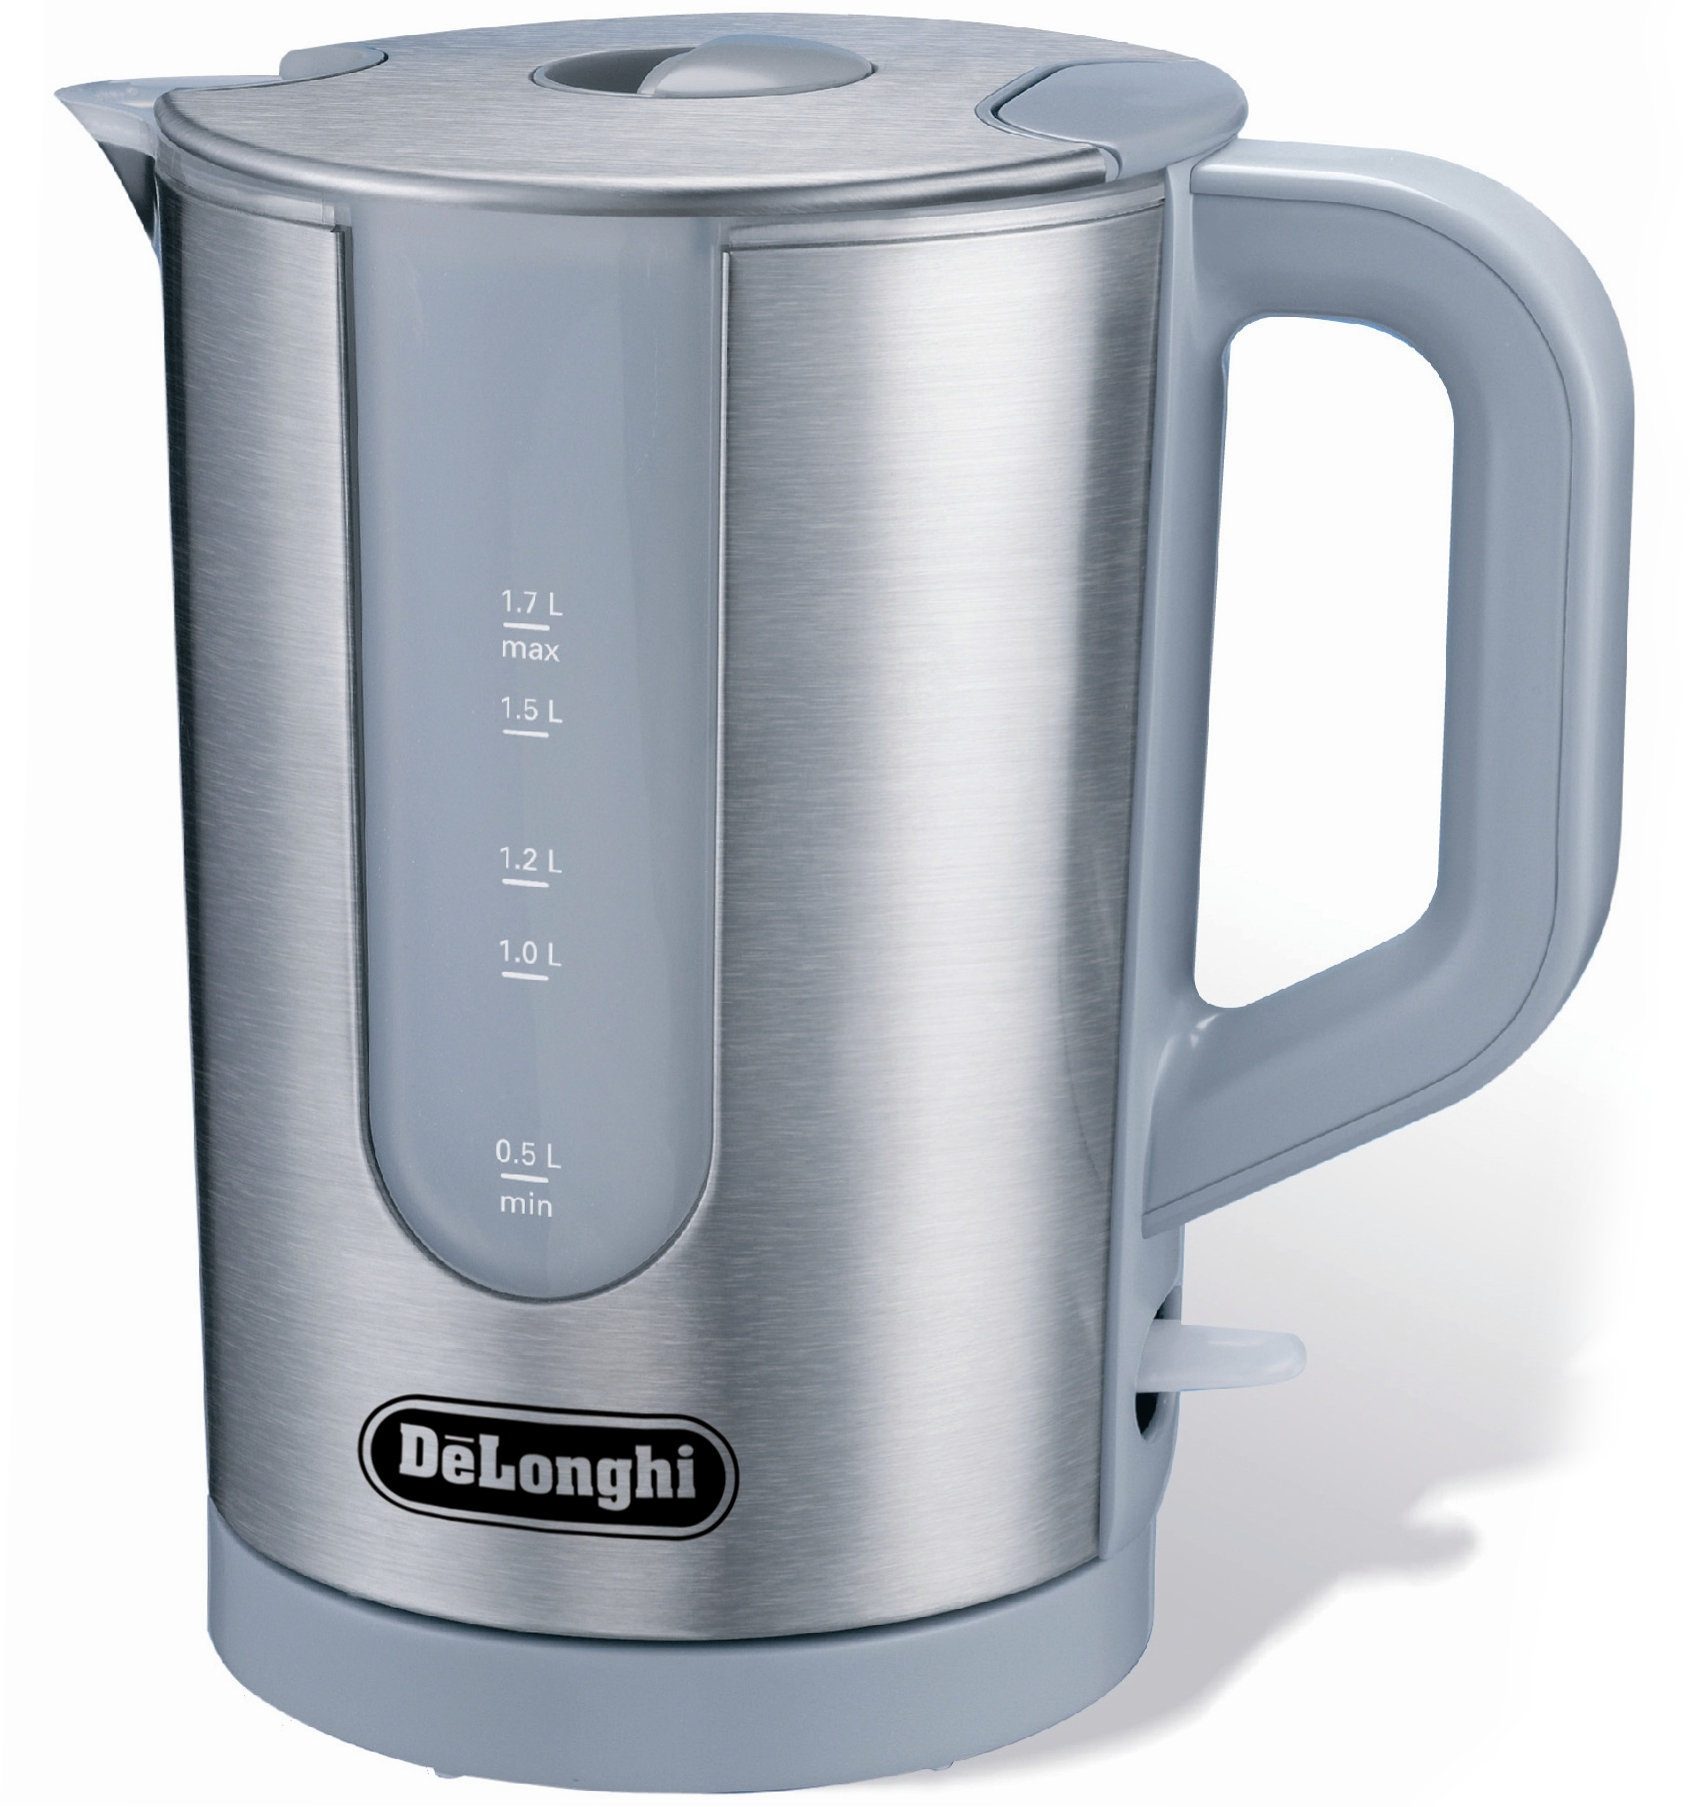 DeLonghi Stainless Steel Cordless Water Kettle, 60 Ounce